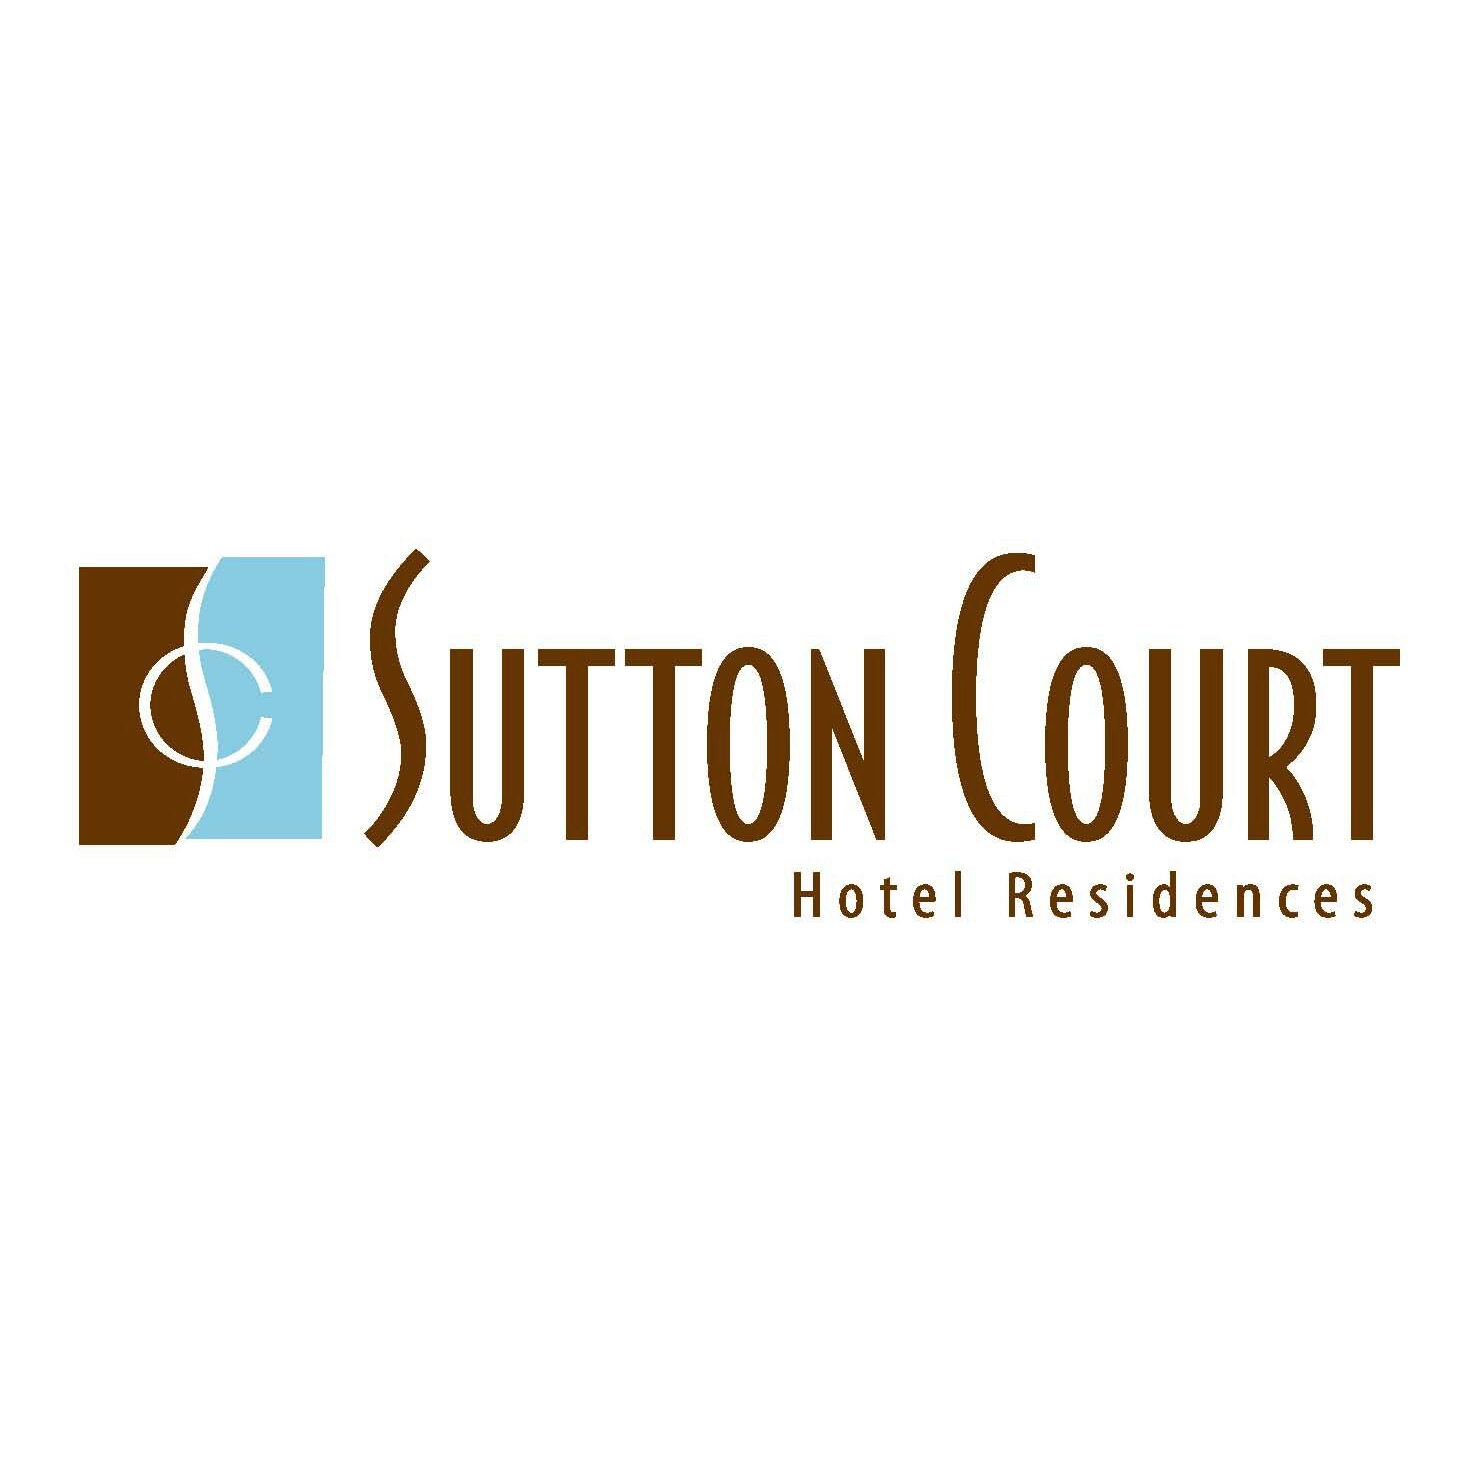 Sutton Court Hotel Residences